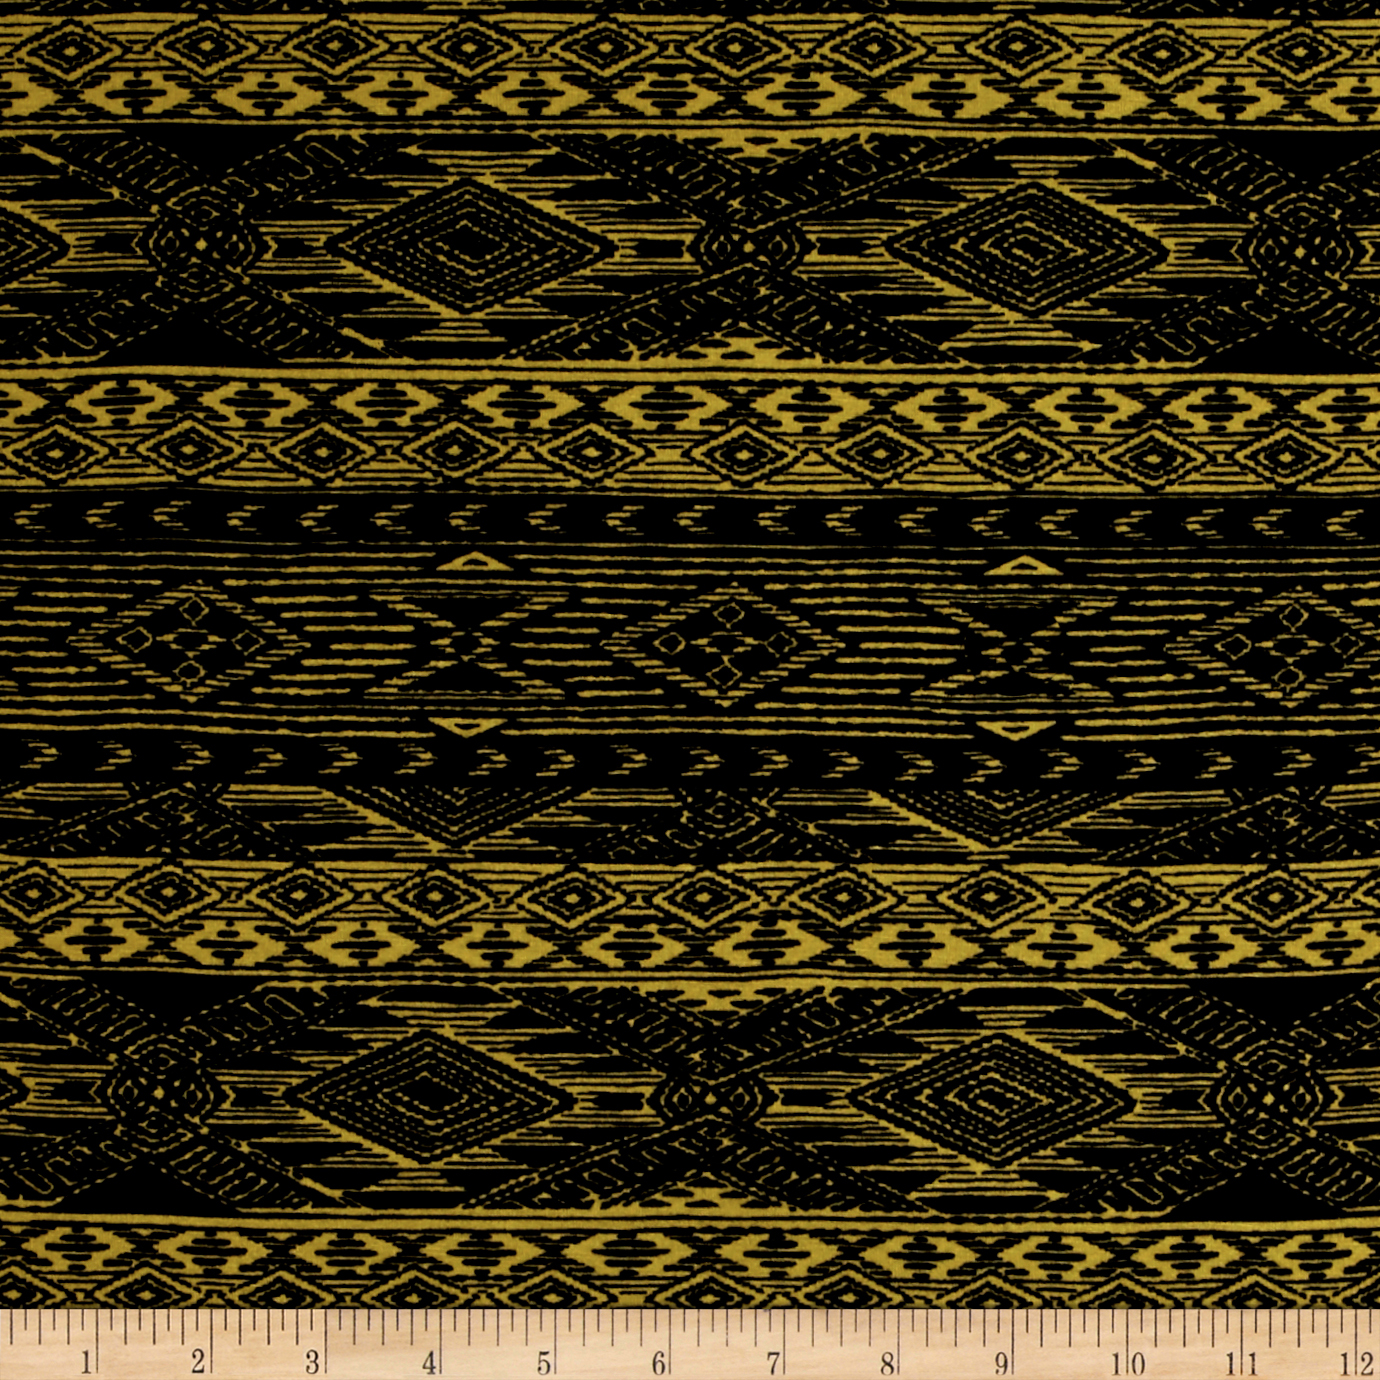 Mayan Diamond Stripe Span Jersey Knit Black Sulphur Fabric